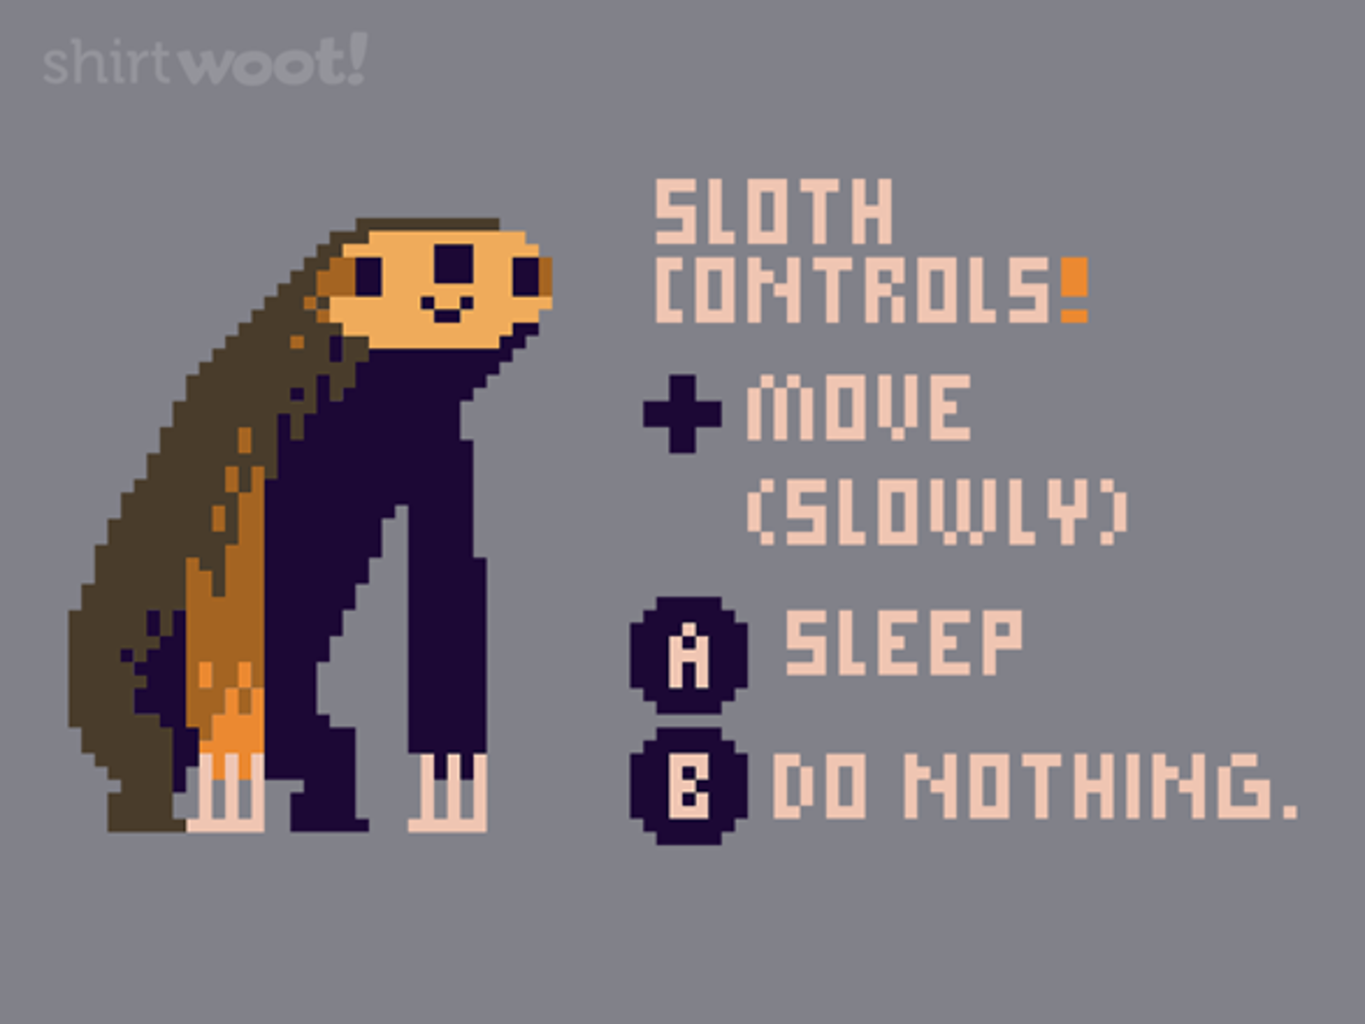 Woot!: Sloth Video Game Controls